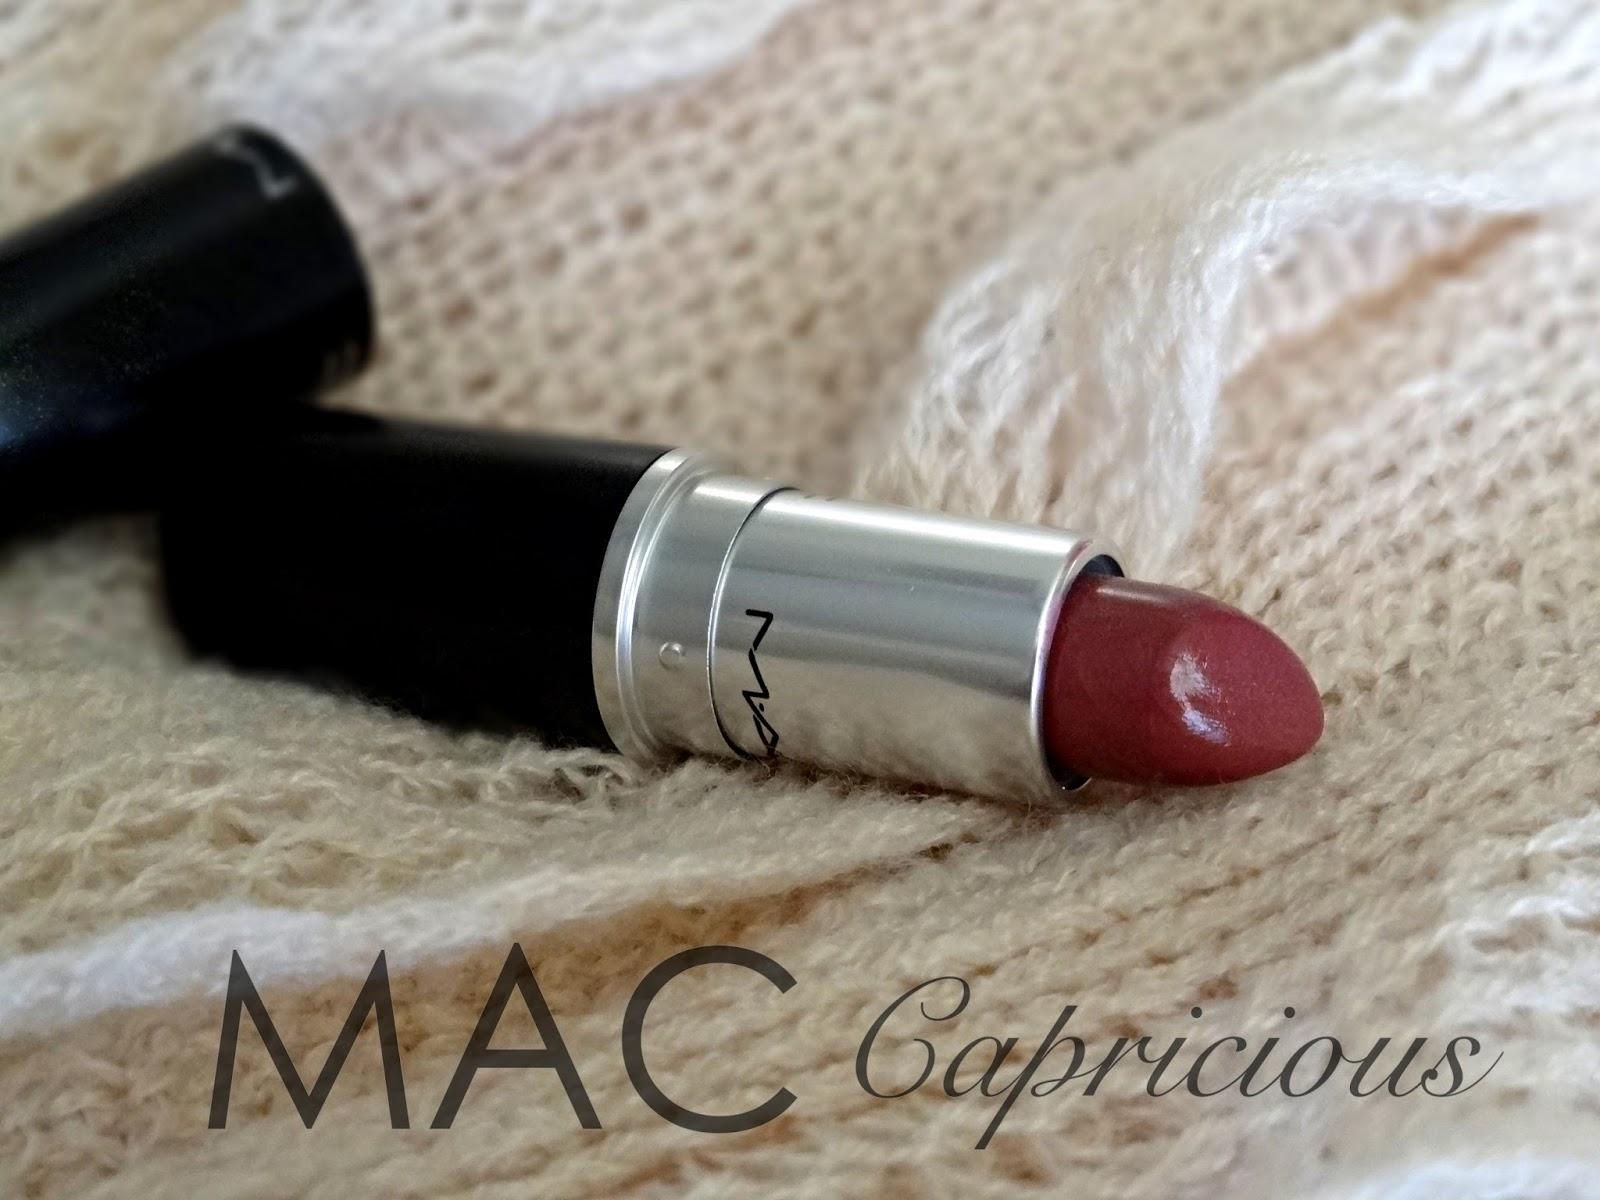 mac capricious lustre lipstick review, Photos & swatches